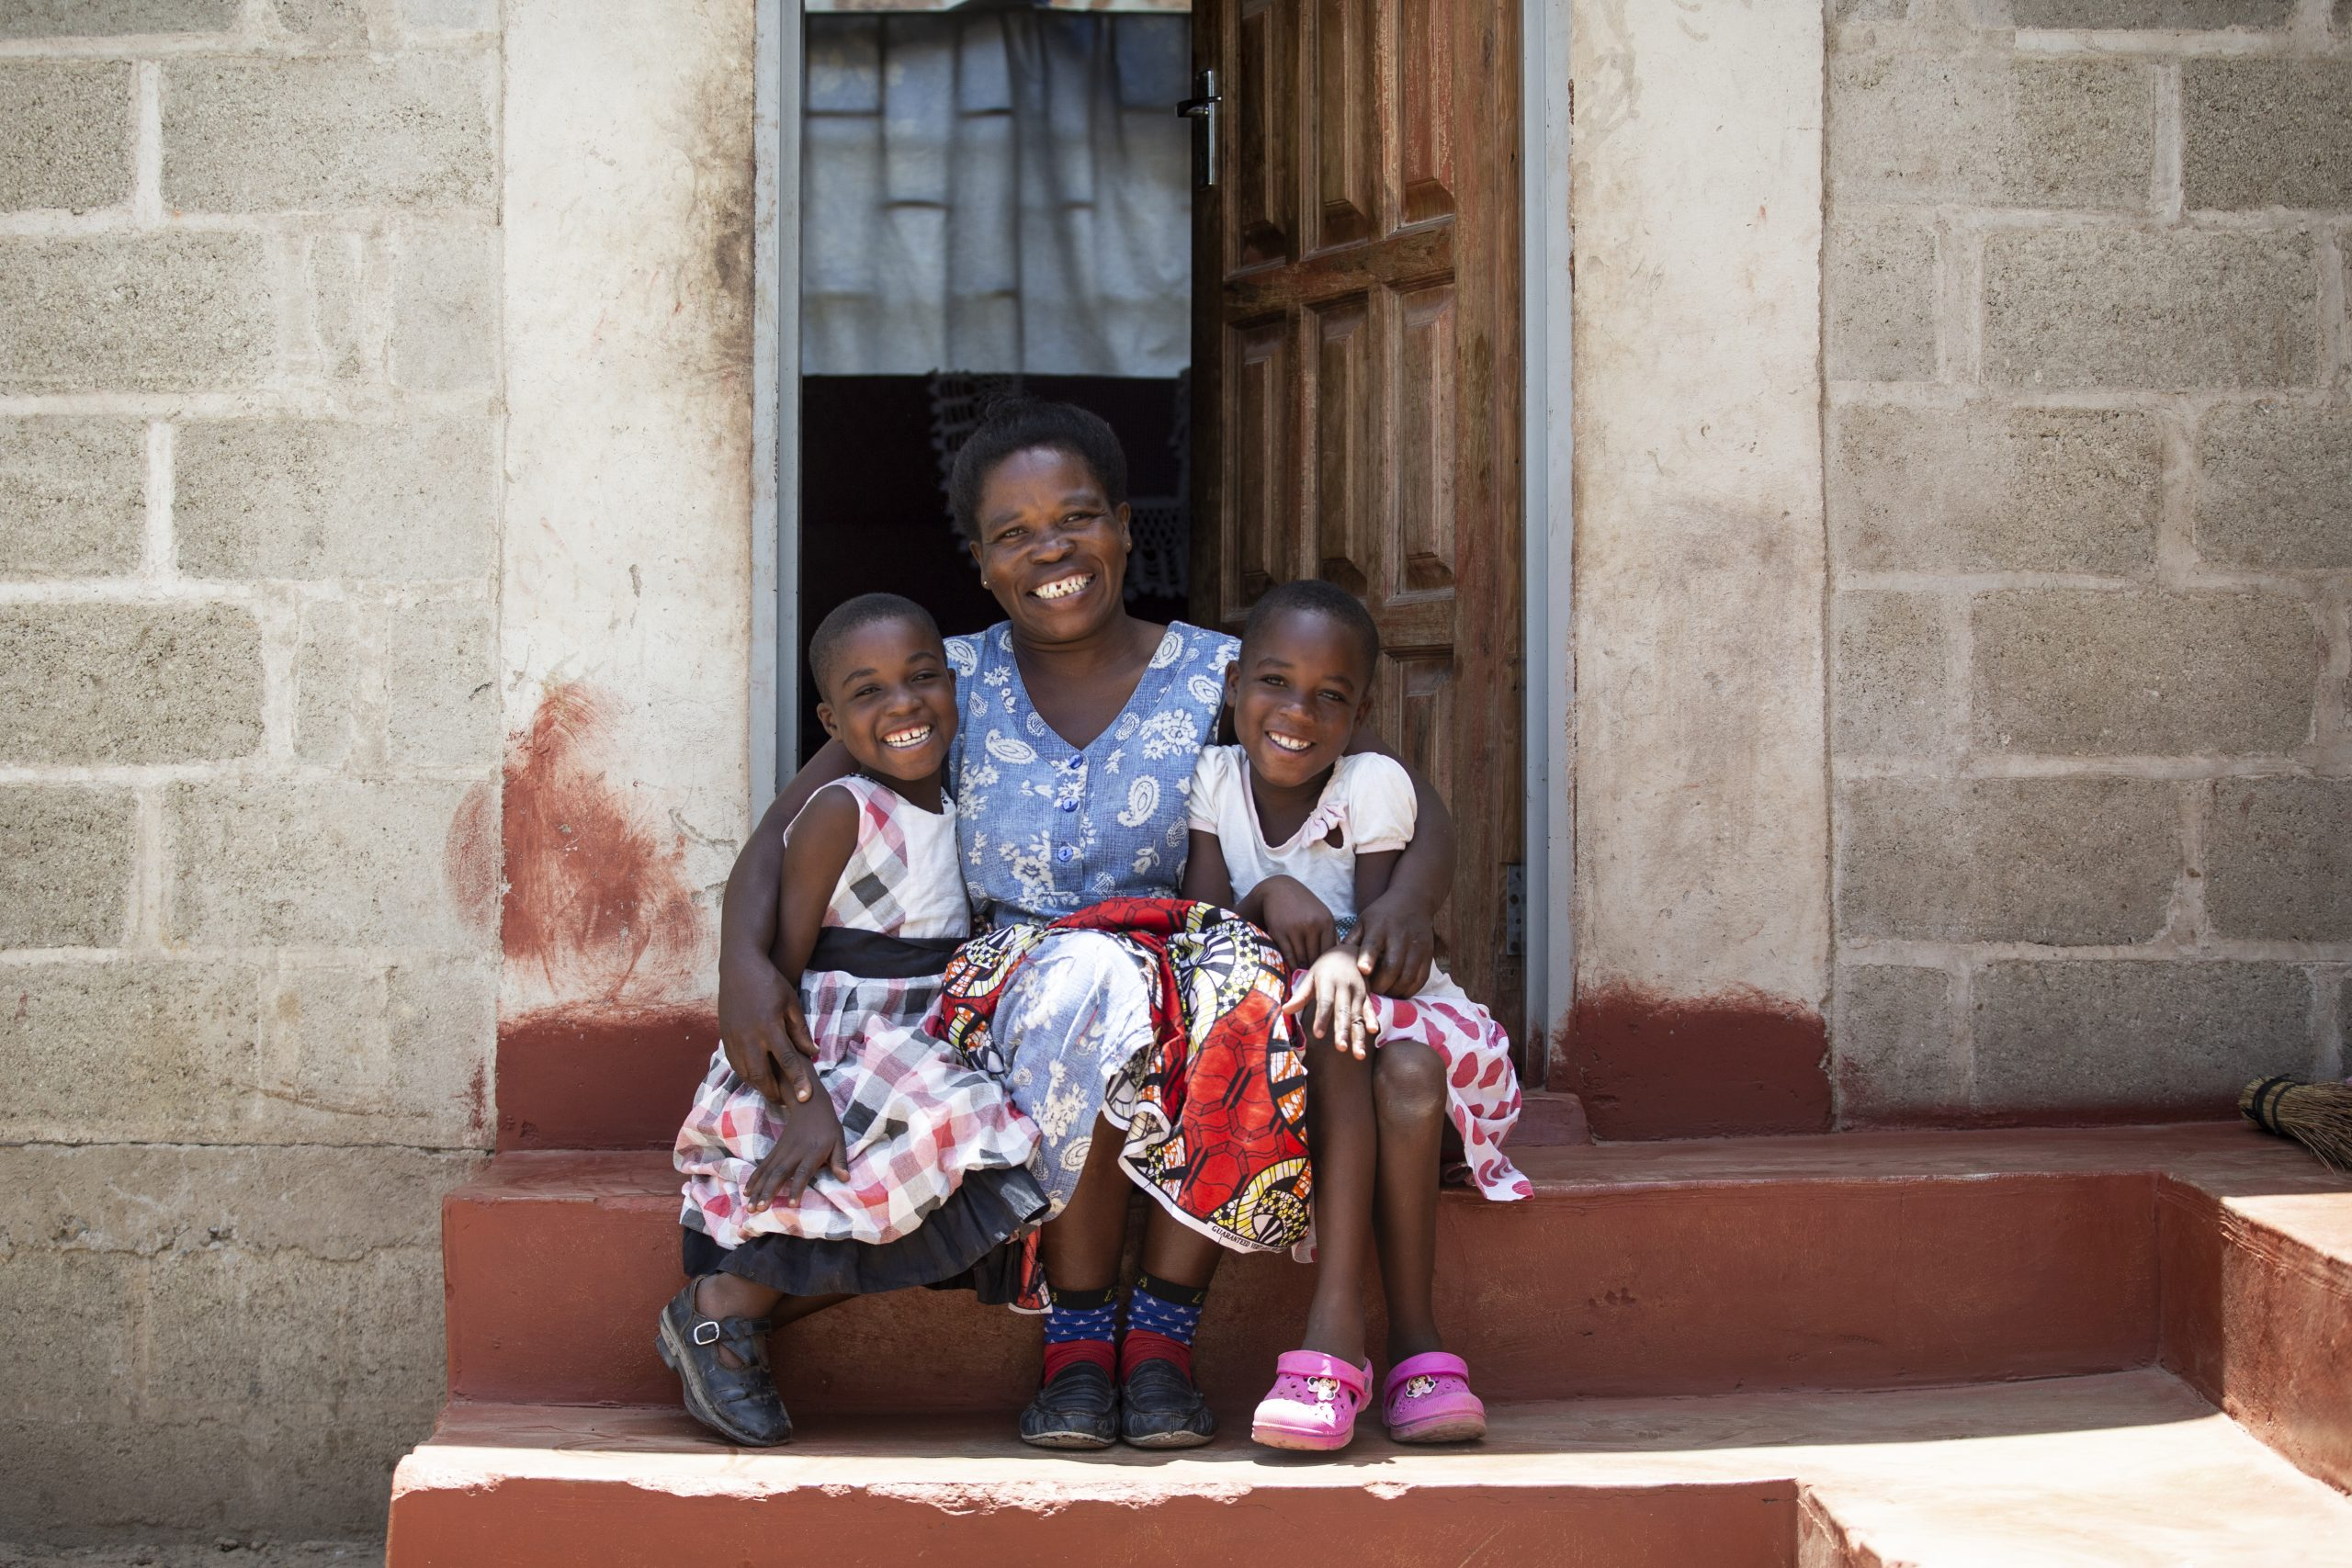 Kabwe, Zambia: Gertrude with her daughters, Naomi & Ruth outside their new Habitat home.